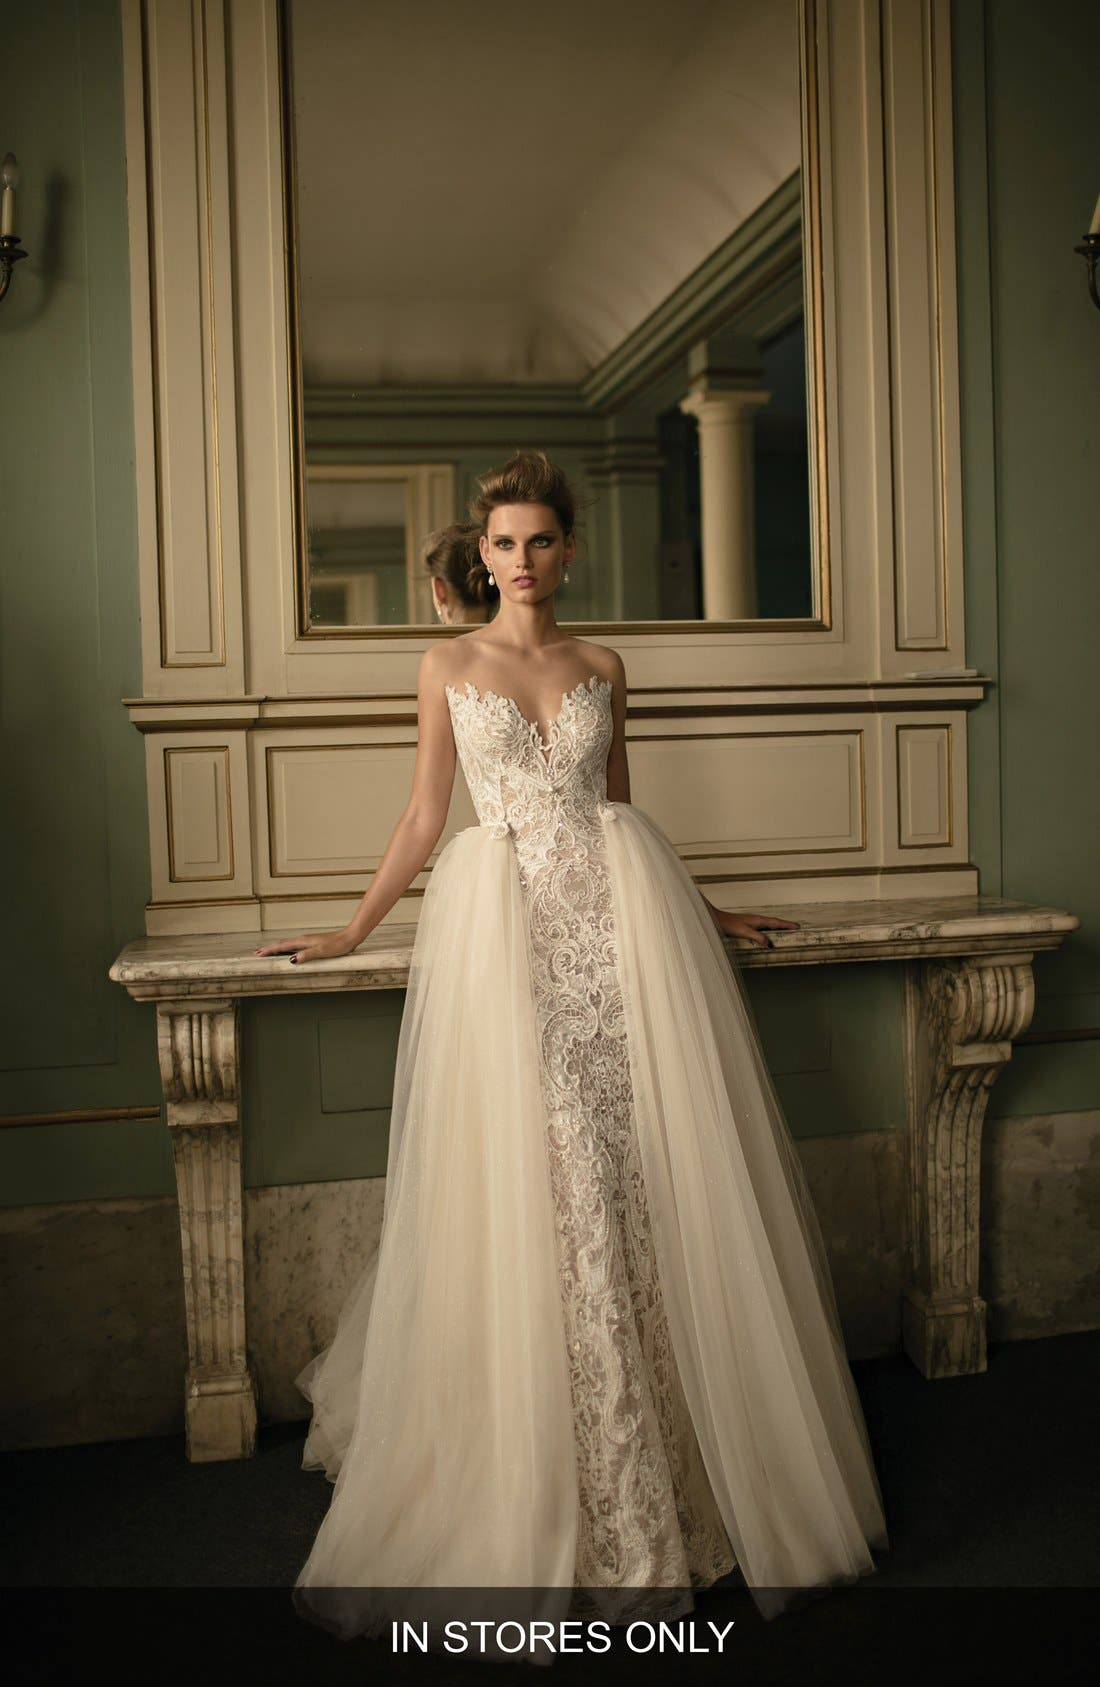 Berta Beaded Lace & Tulle Ballgown (In Stores Only)